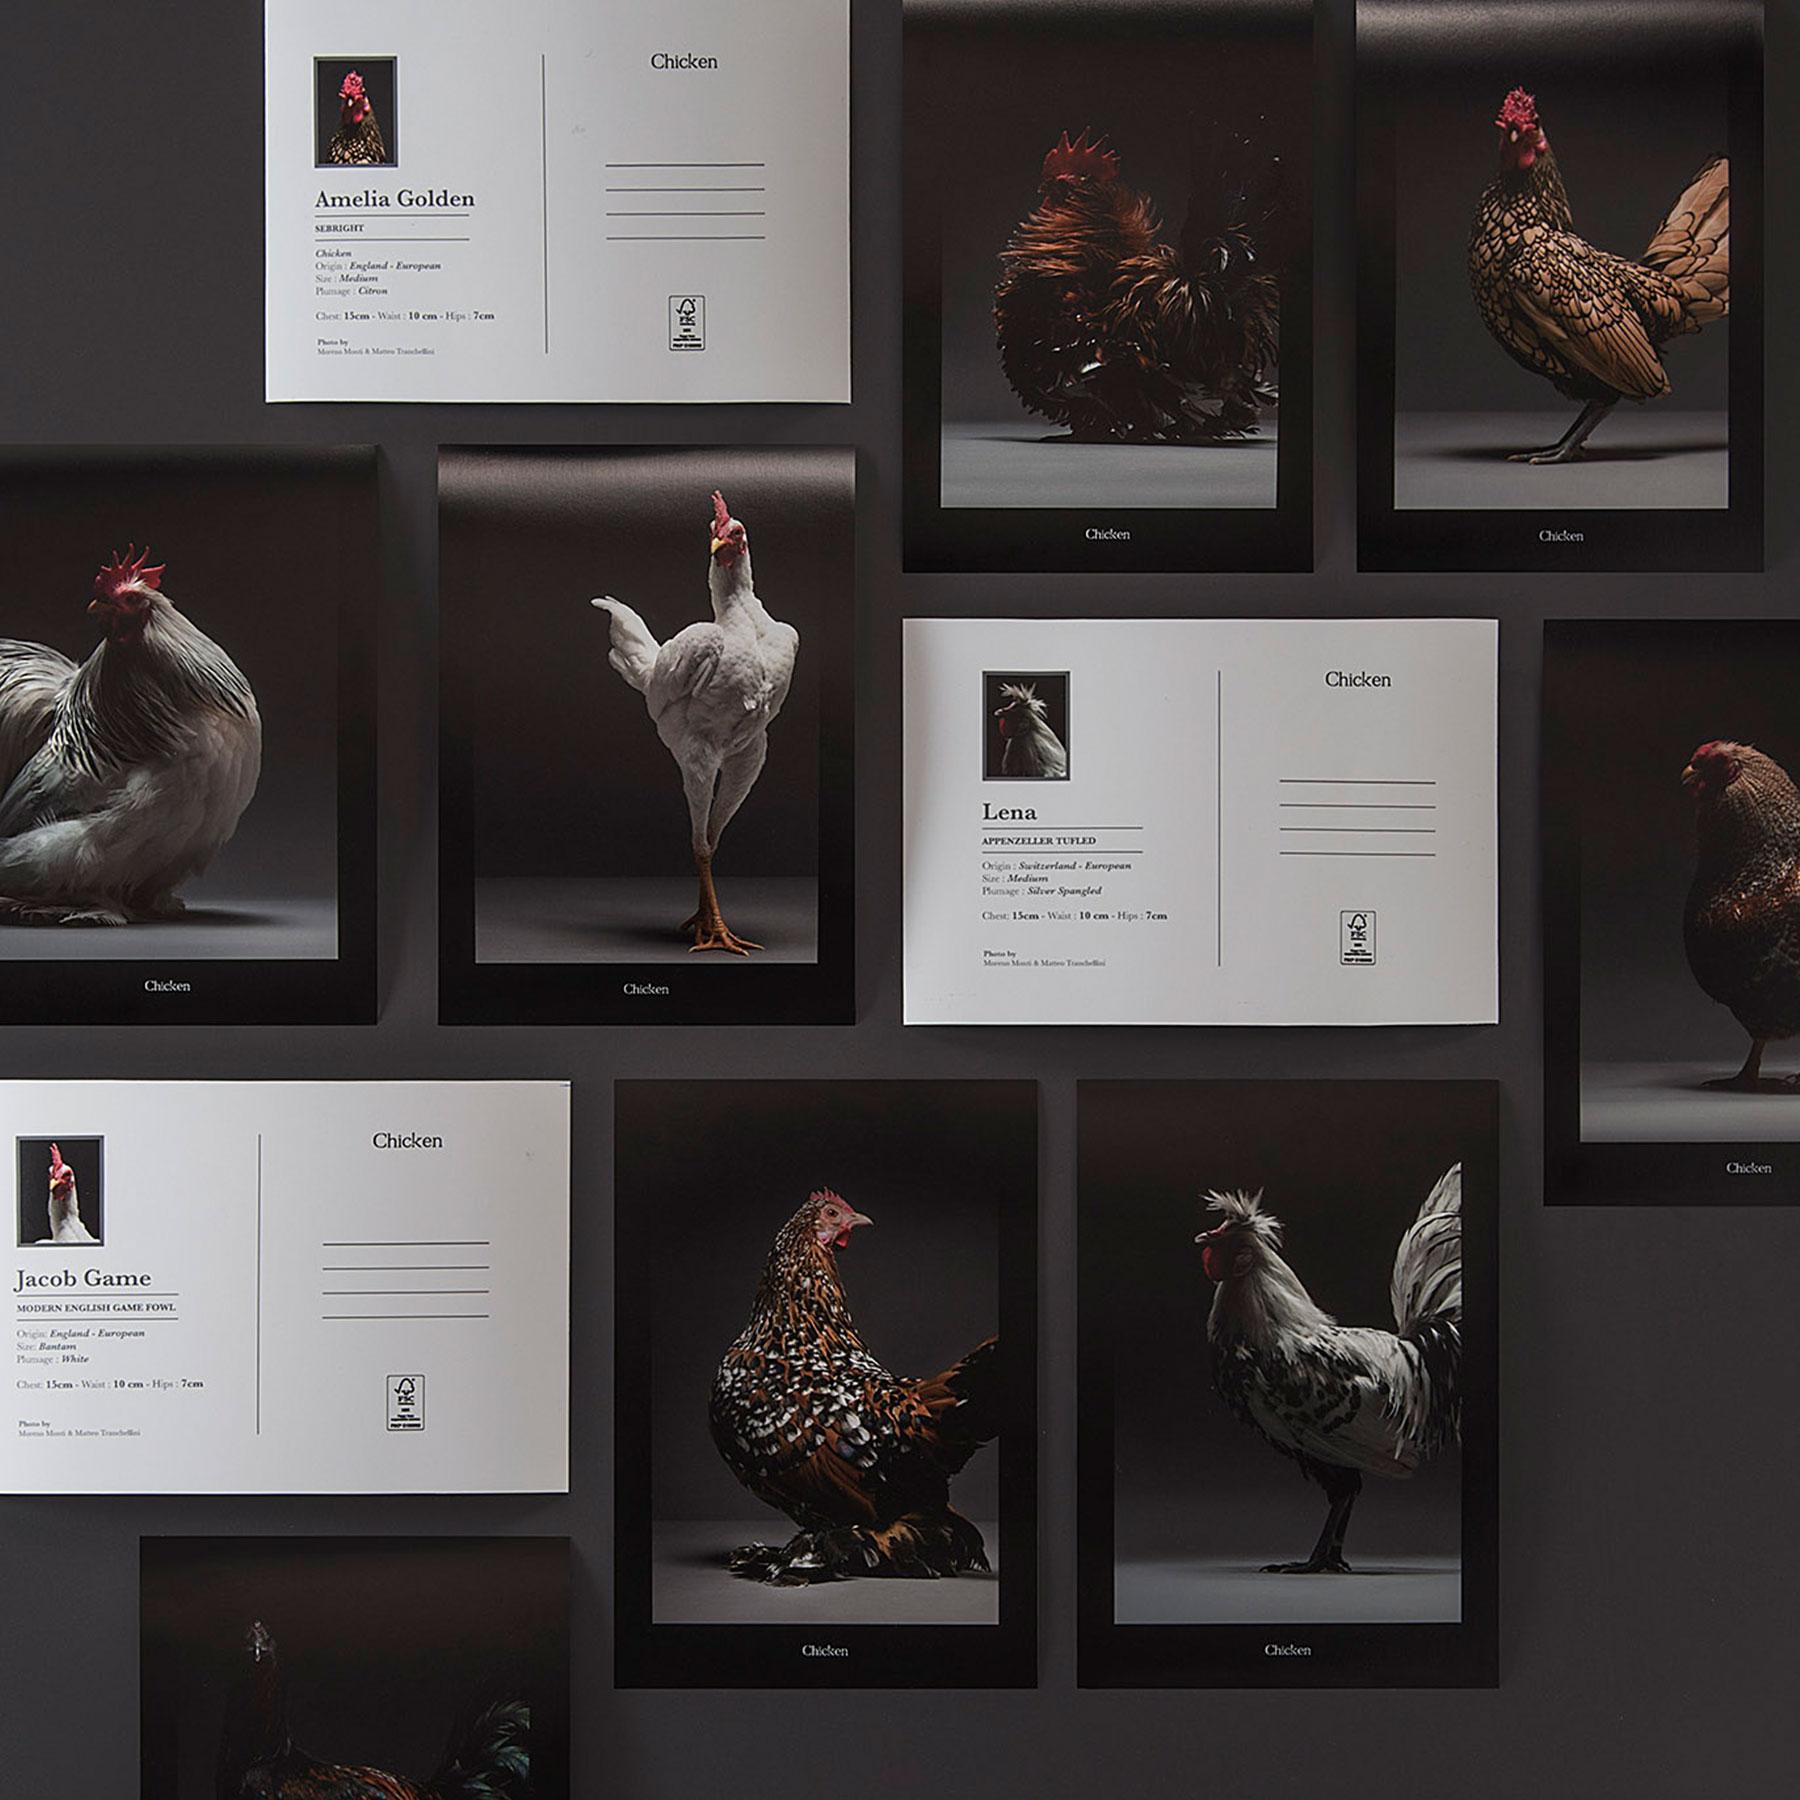 The Most Stunning Chicken Book Photos Ever Made   Indiegogo